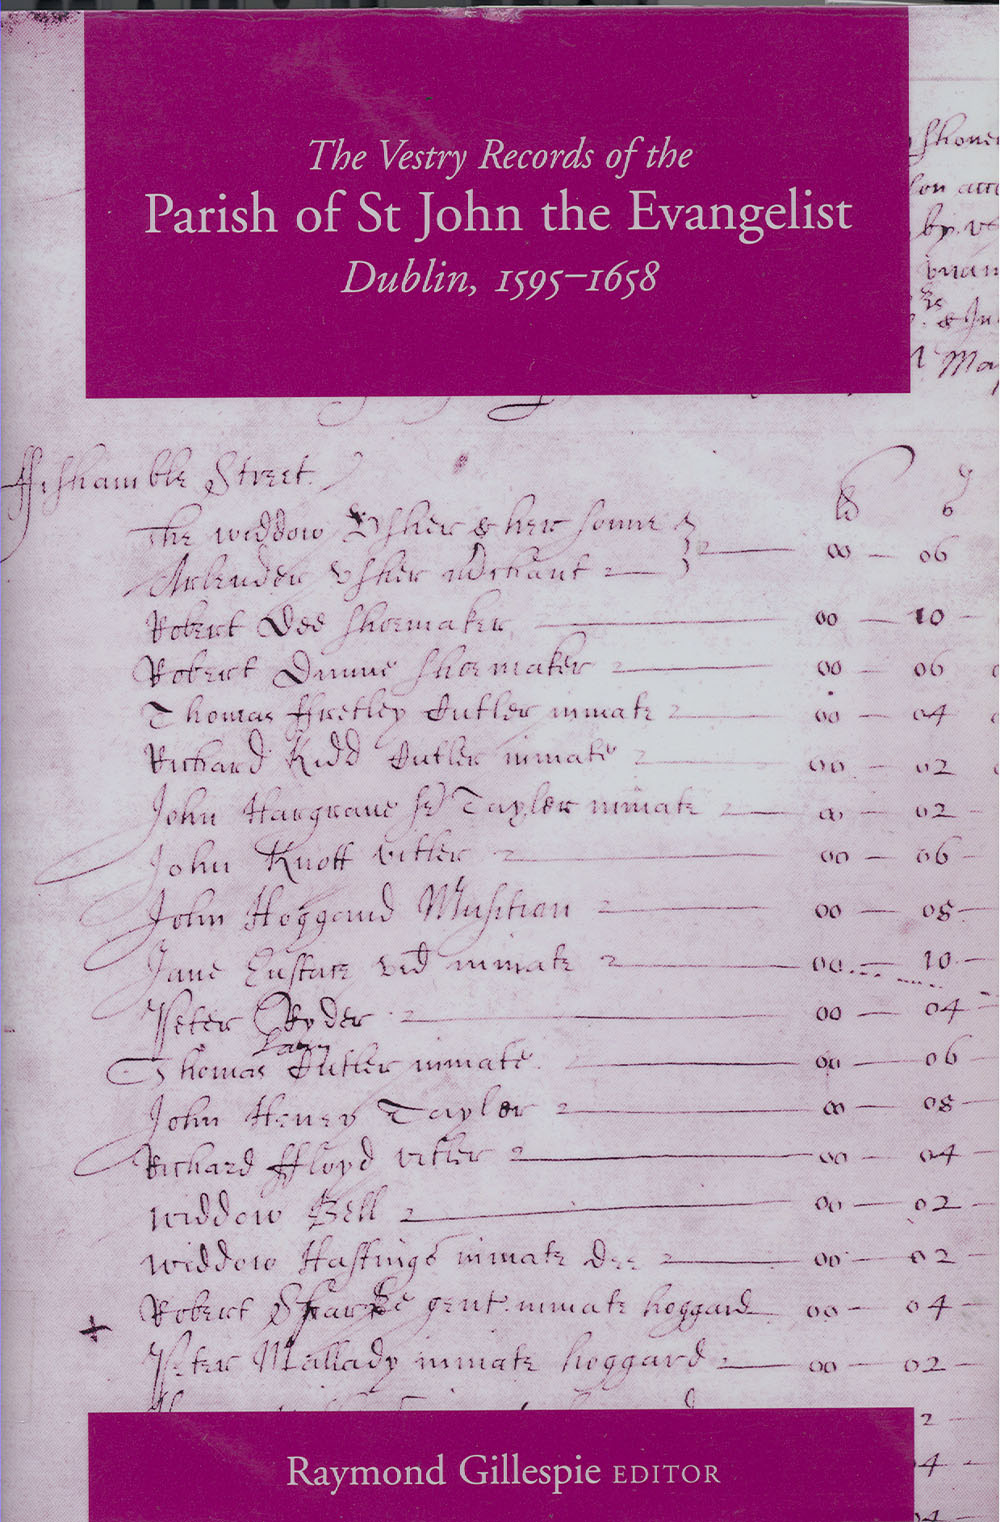 Vestry records of the parish of St John the Evangelist, Dublin, 1595-1658